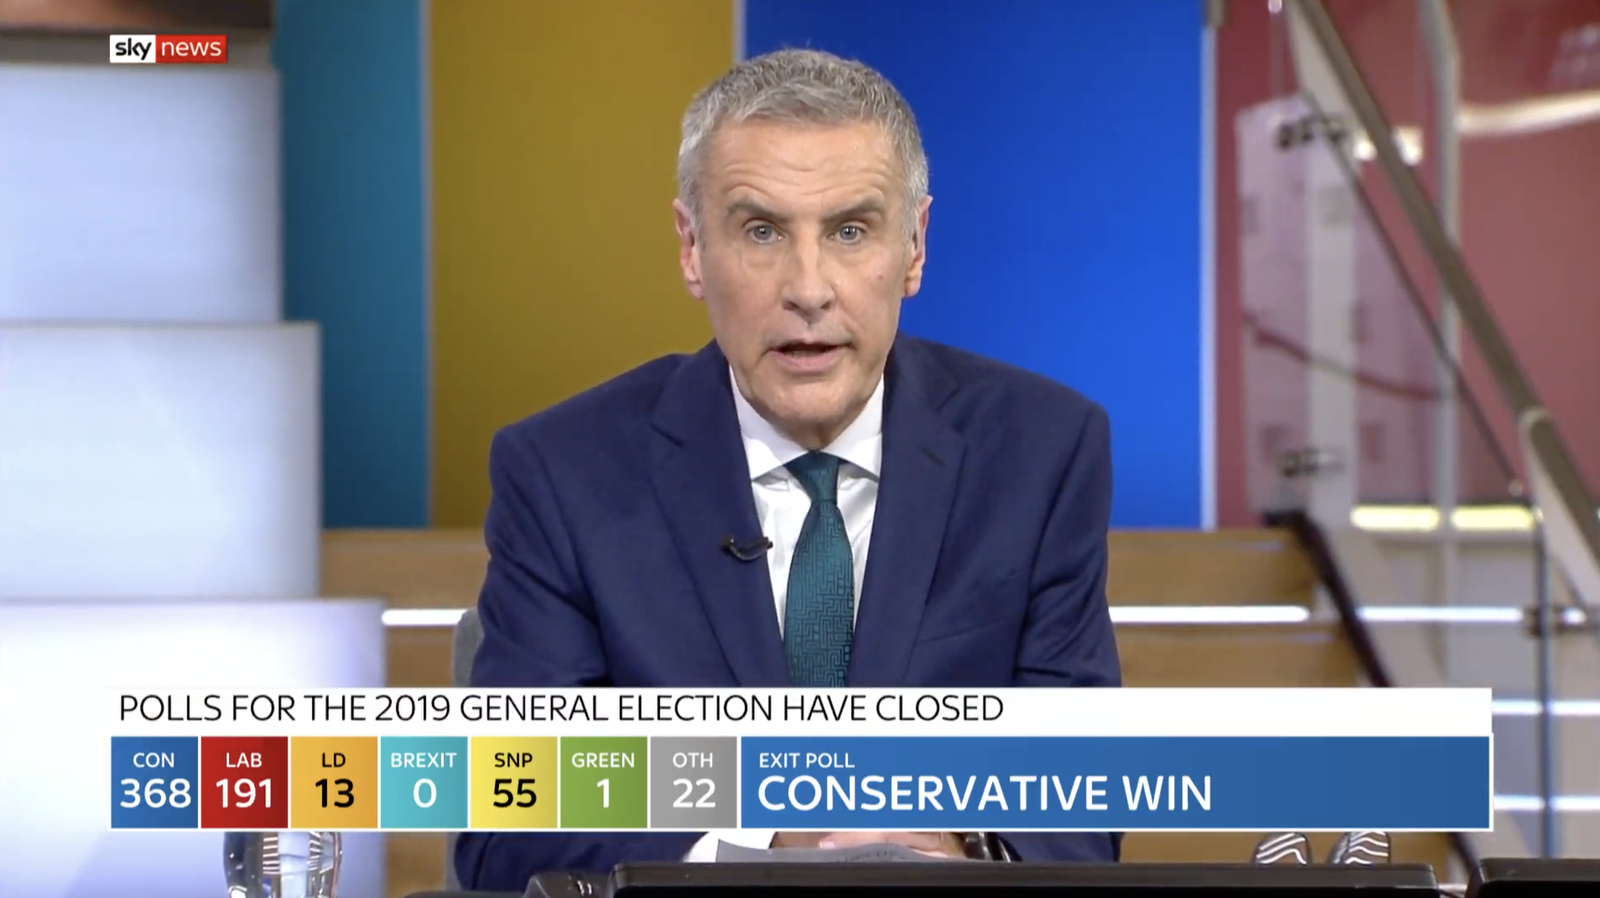 NCS_Sky-News-2019-General-Election_016